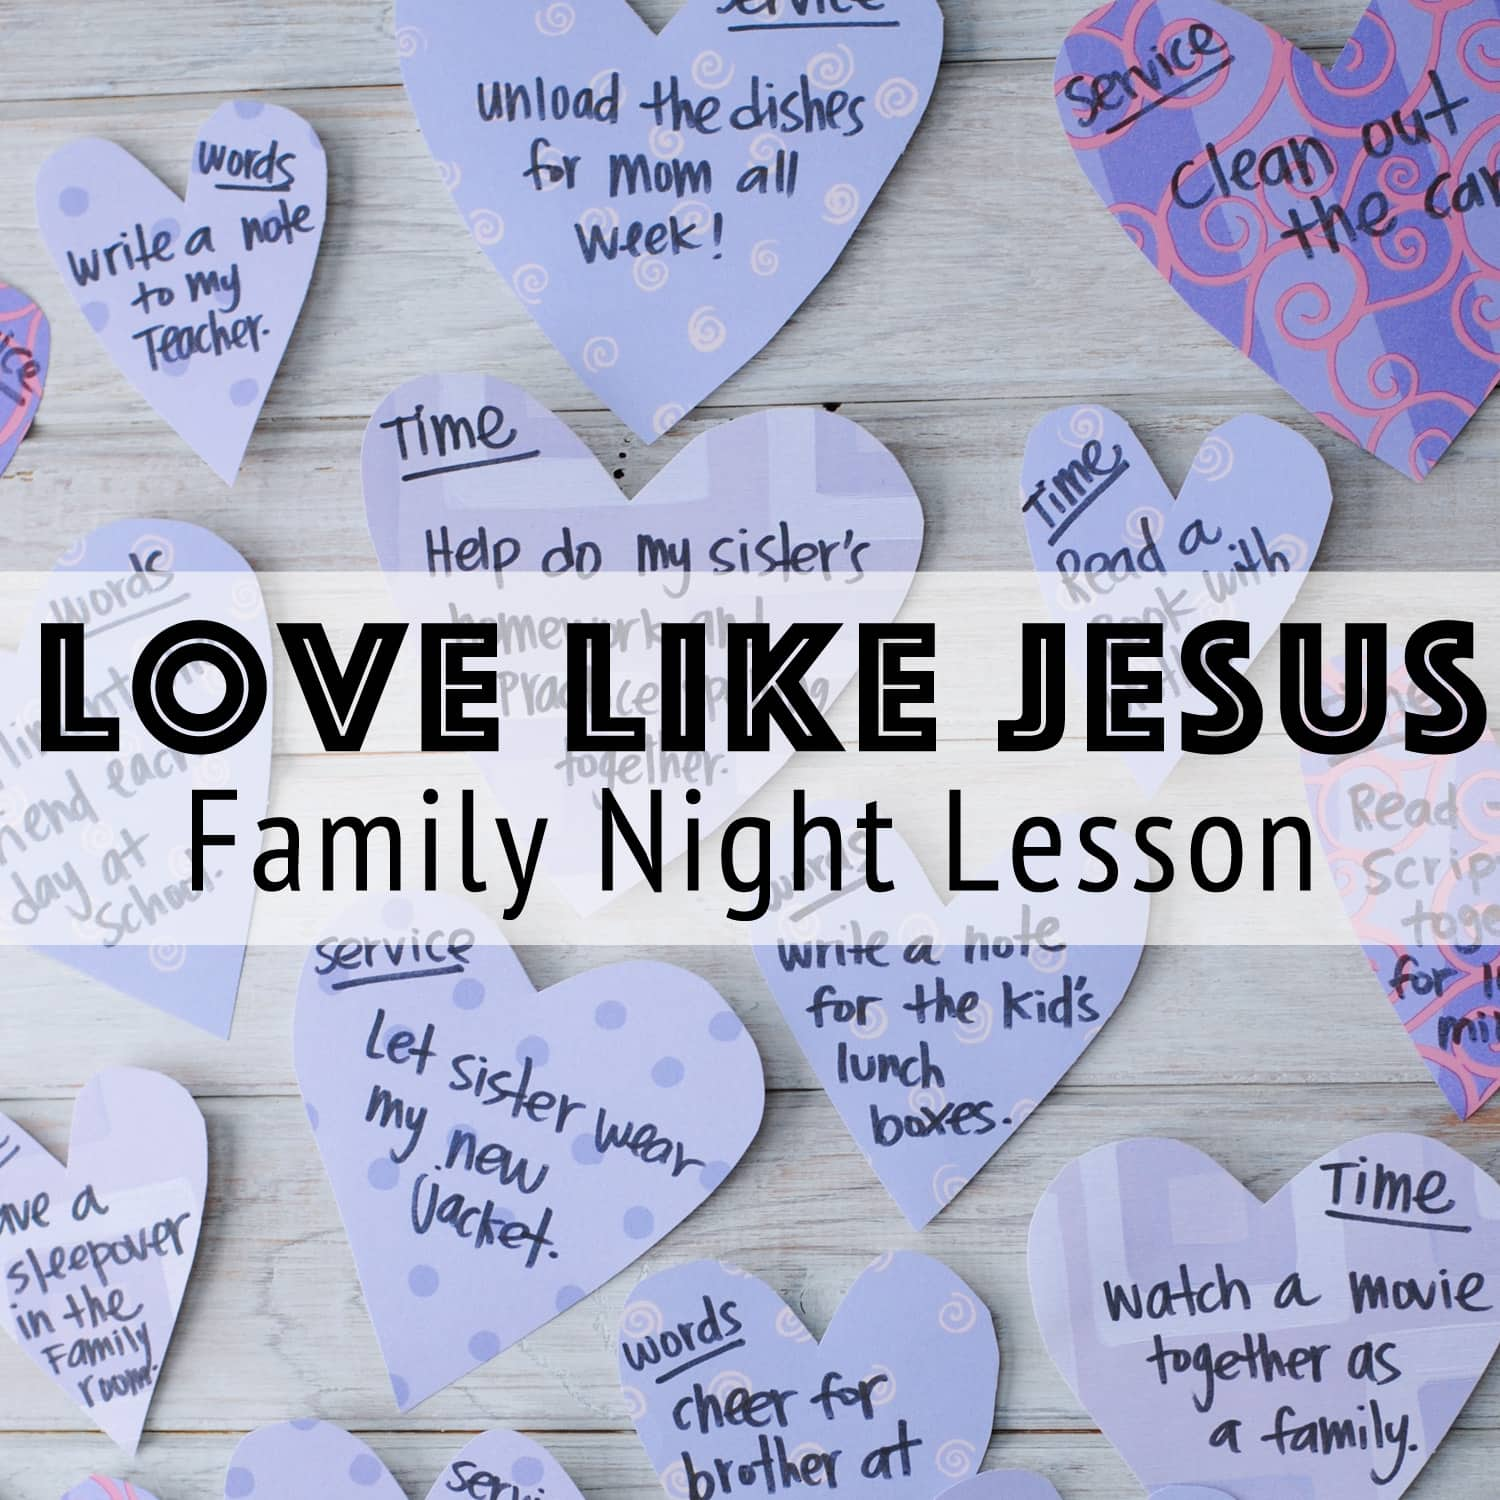 Love Like Jesus - A Valentine inspired Family Night lesson is up on the blog today! Get all the details at www.orsoshesays.com.